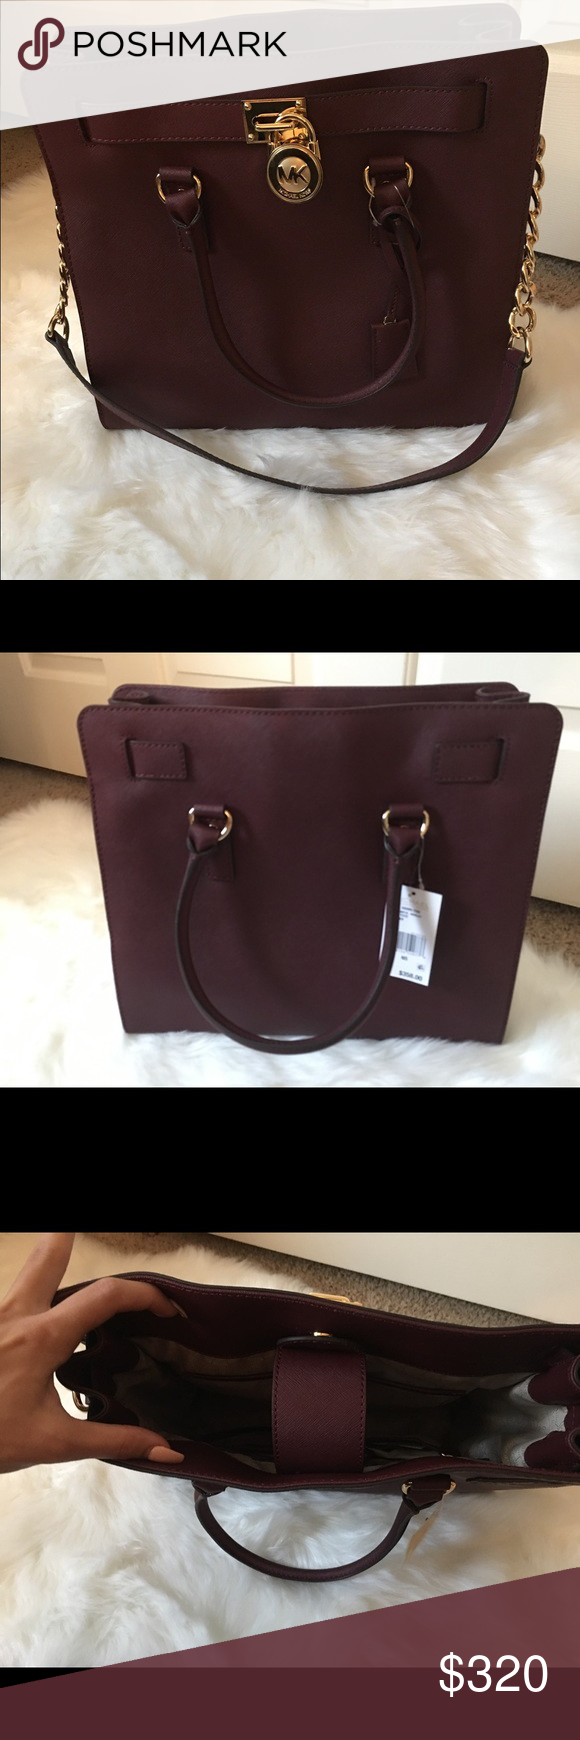 Micheal Kors large merlot Hamilton bag This beauty is in need of a good home. She's never been used or worn. Tags are still on, she's a beautiful merlot color, great for fall or anytime. Looking for price above or best offer. Thanks for shopping! Michael Kors Bags Satchels